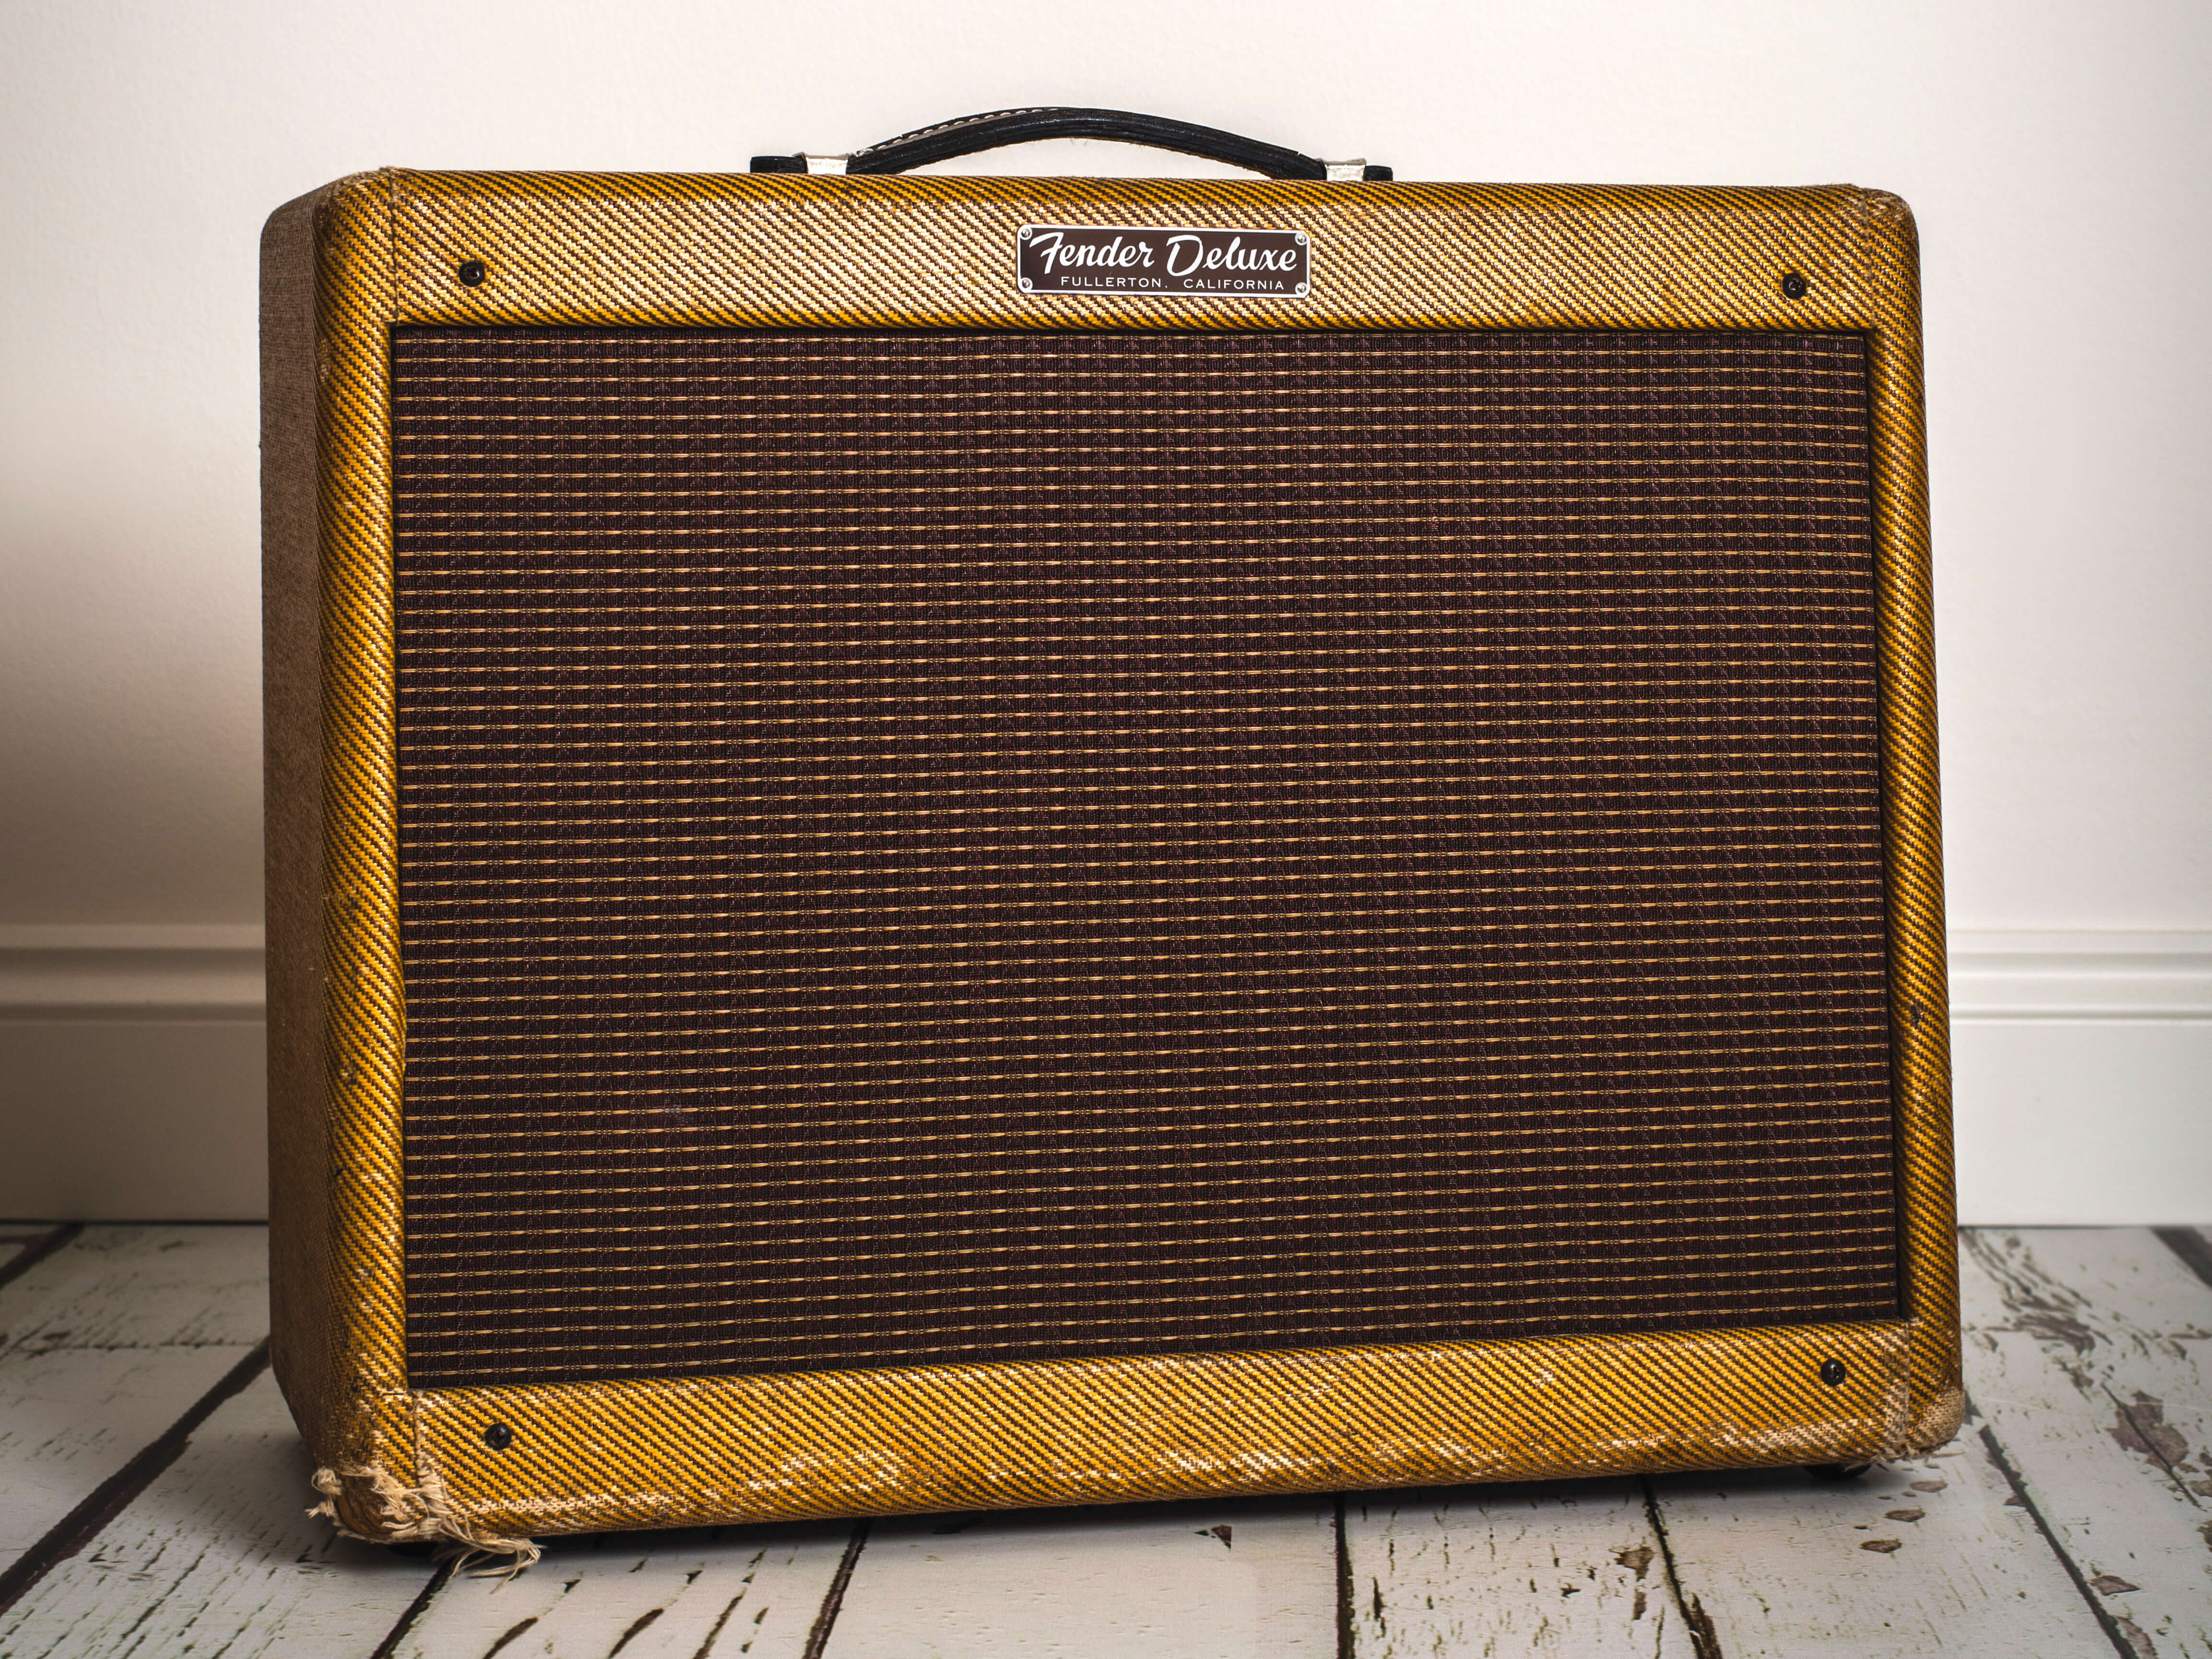 Fender Tweed Amp >> You Ask What Do I Look Out For When Acquiring A Tweed Amp